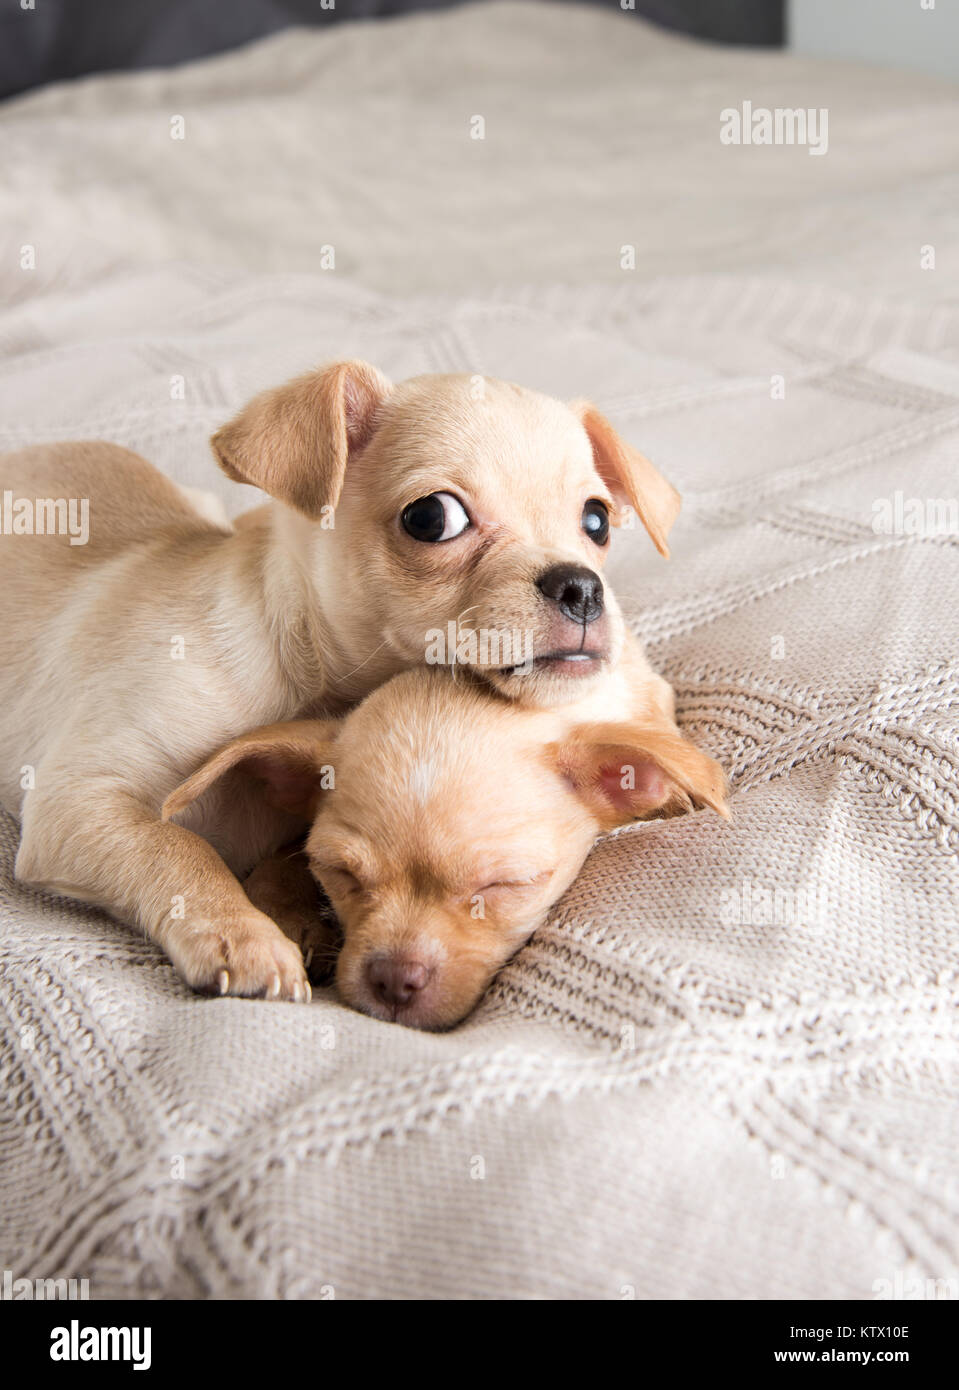 Tiny Chihuahua Puppies Relaxing On Blanket Stock Photo Alamy